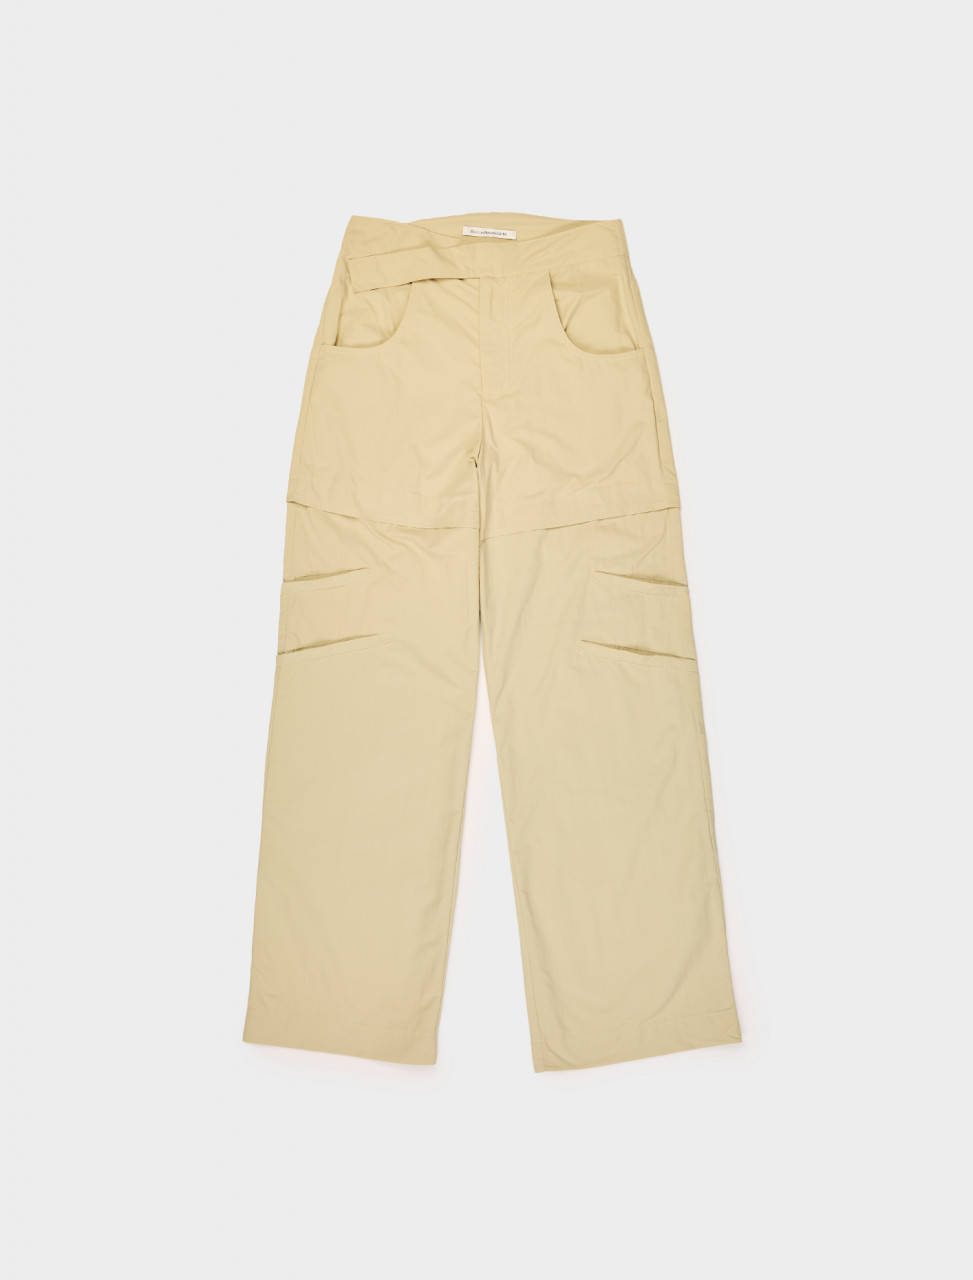 342-SS20GIOME MAINLINE GIOME TROUSER YELLOW